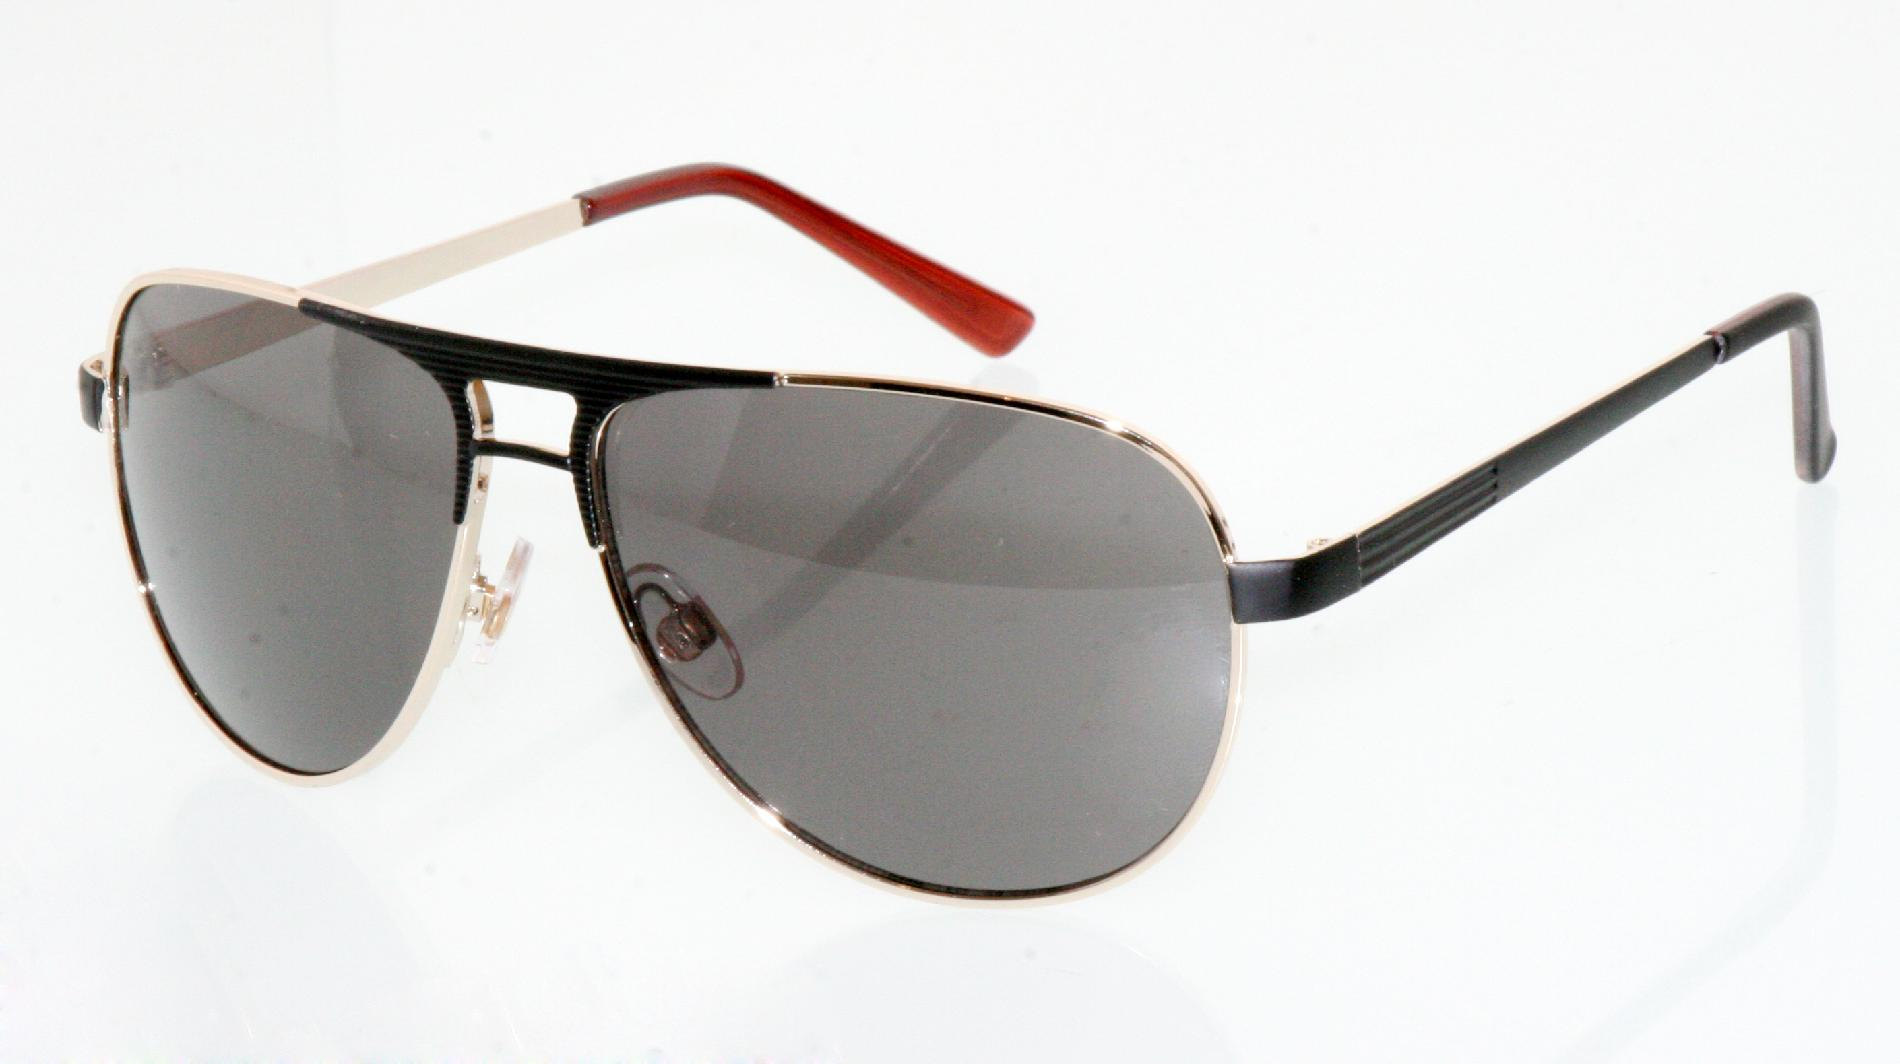 Men's Oversized Aviator Sunglasses